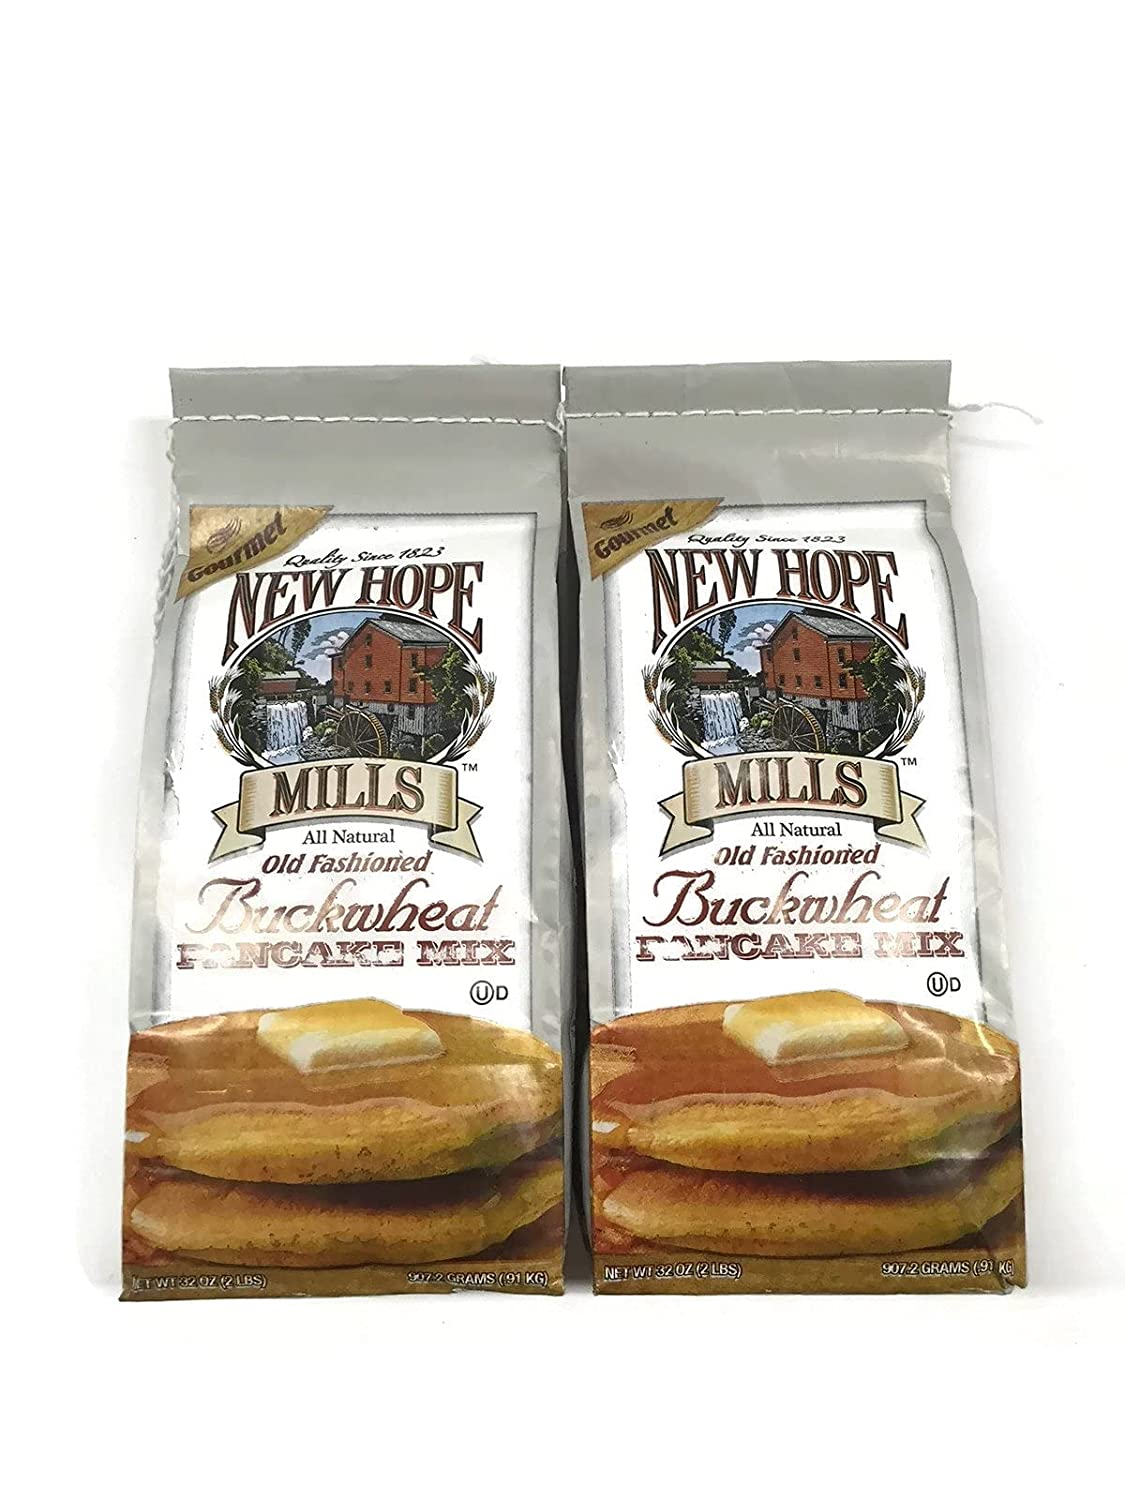 New Hope Mills Buckwheat Large discharge sale Pancake Mix 2 Bags Pack 1 - Ranking TOP17 of Lb.